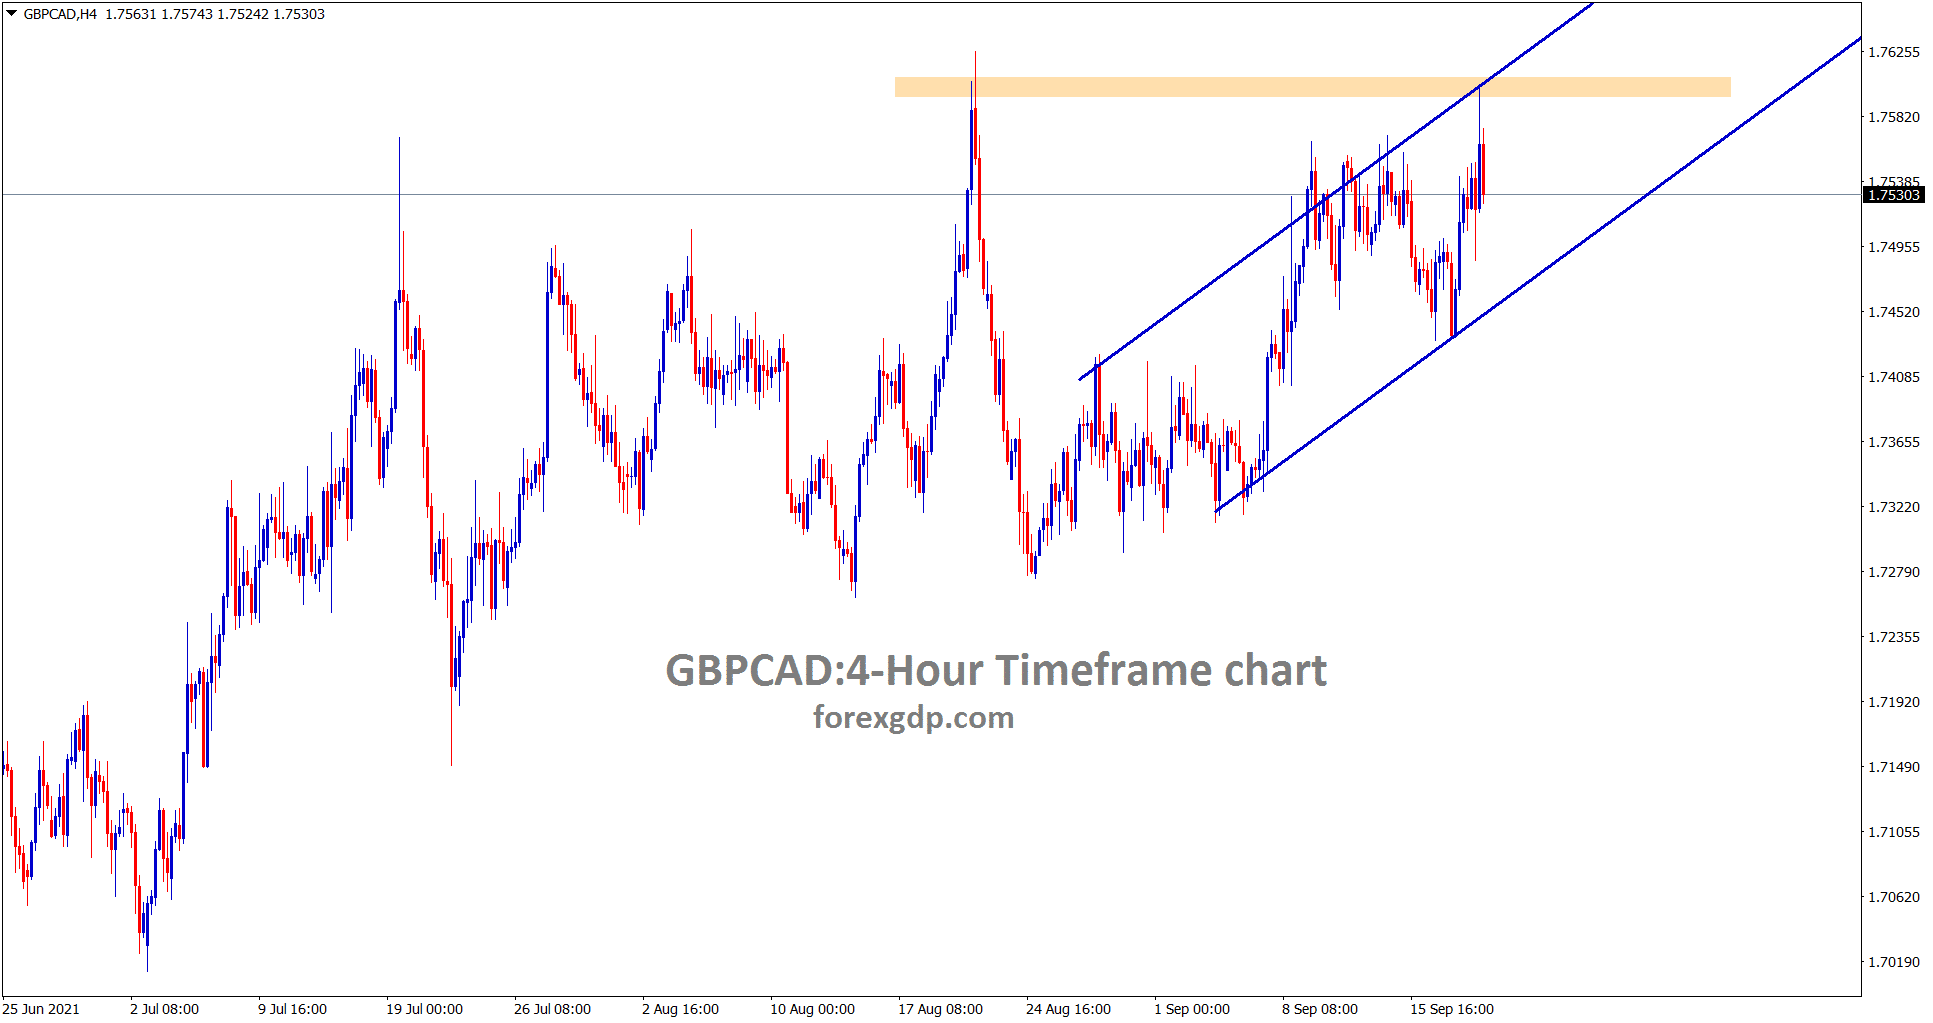 GBPCAD is moving uptrend and reaches the horizontal resistance area